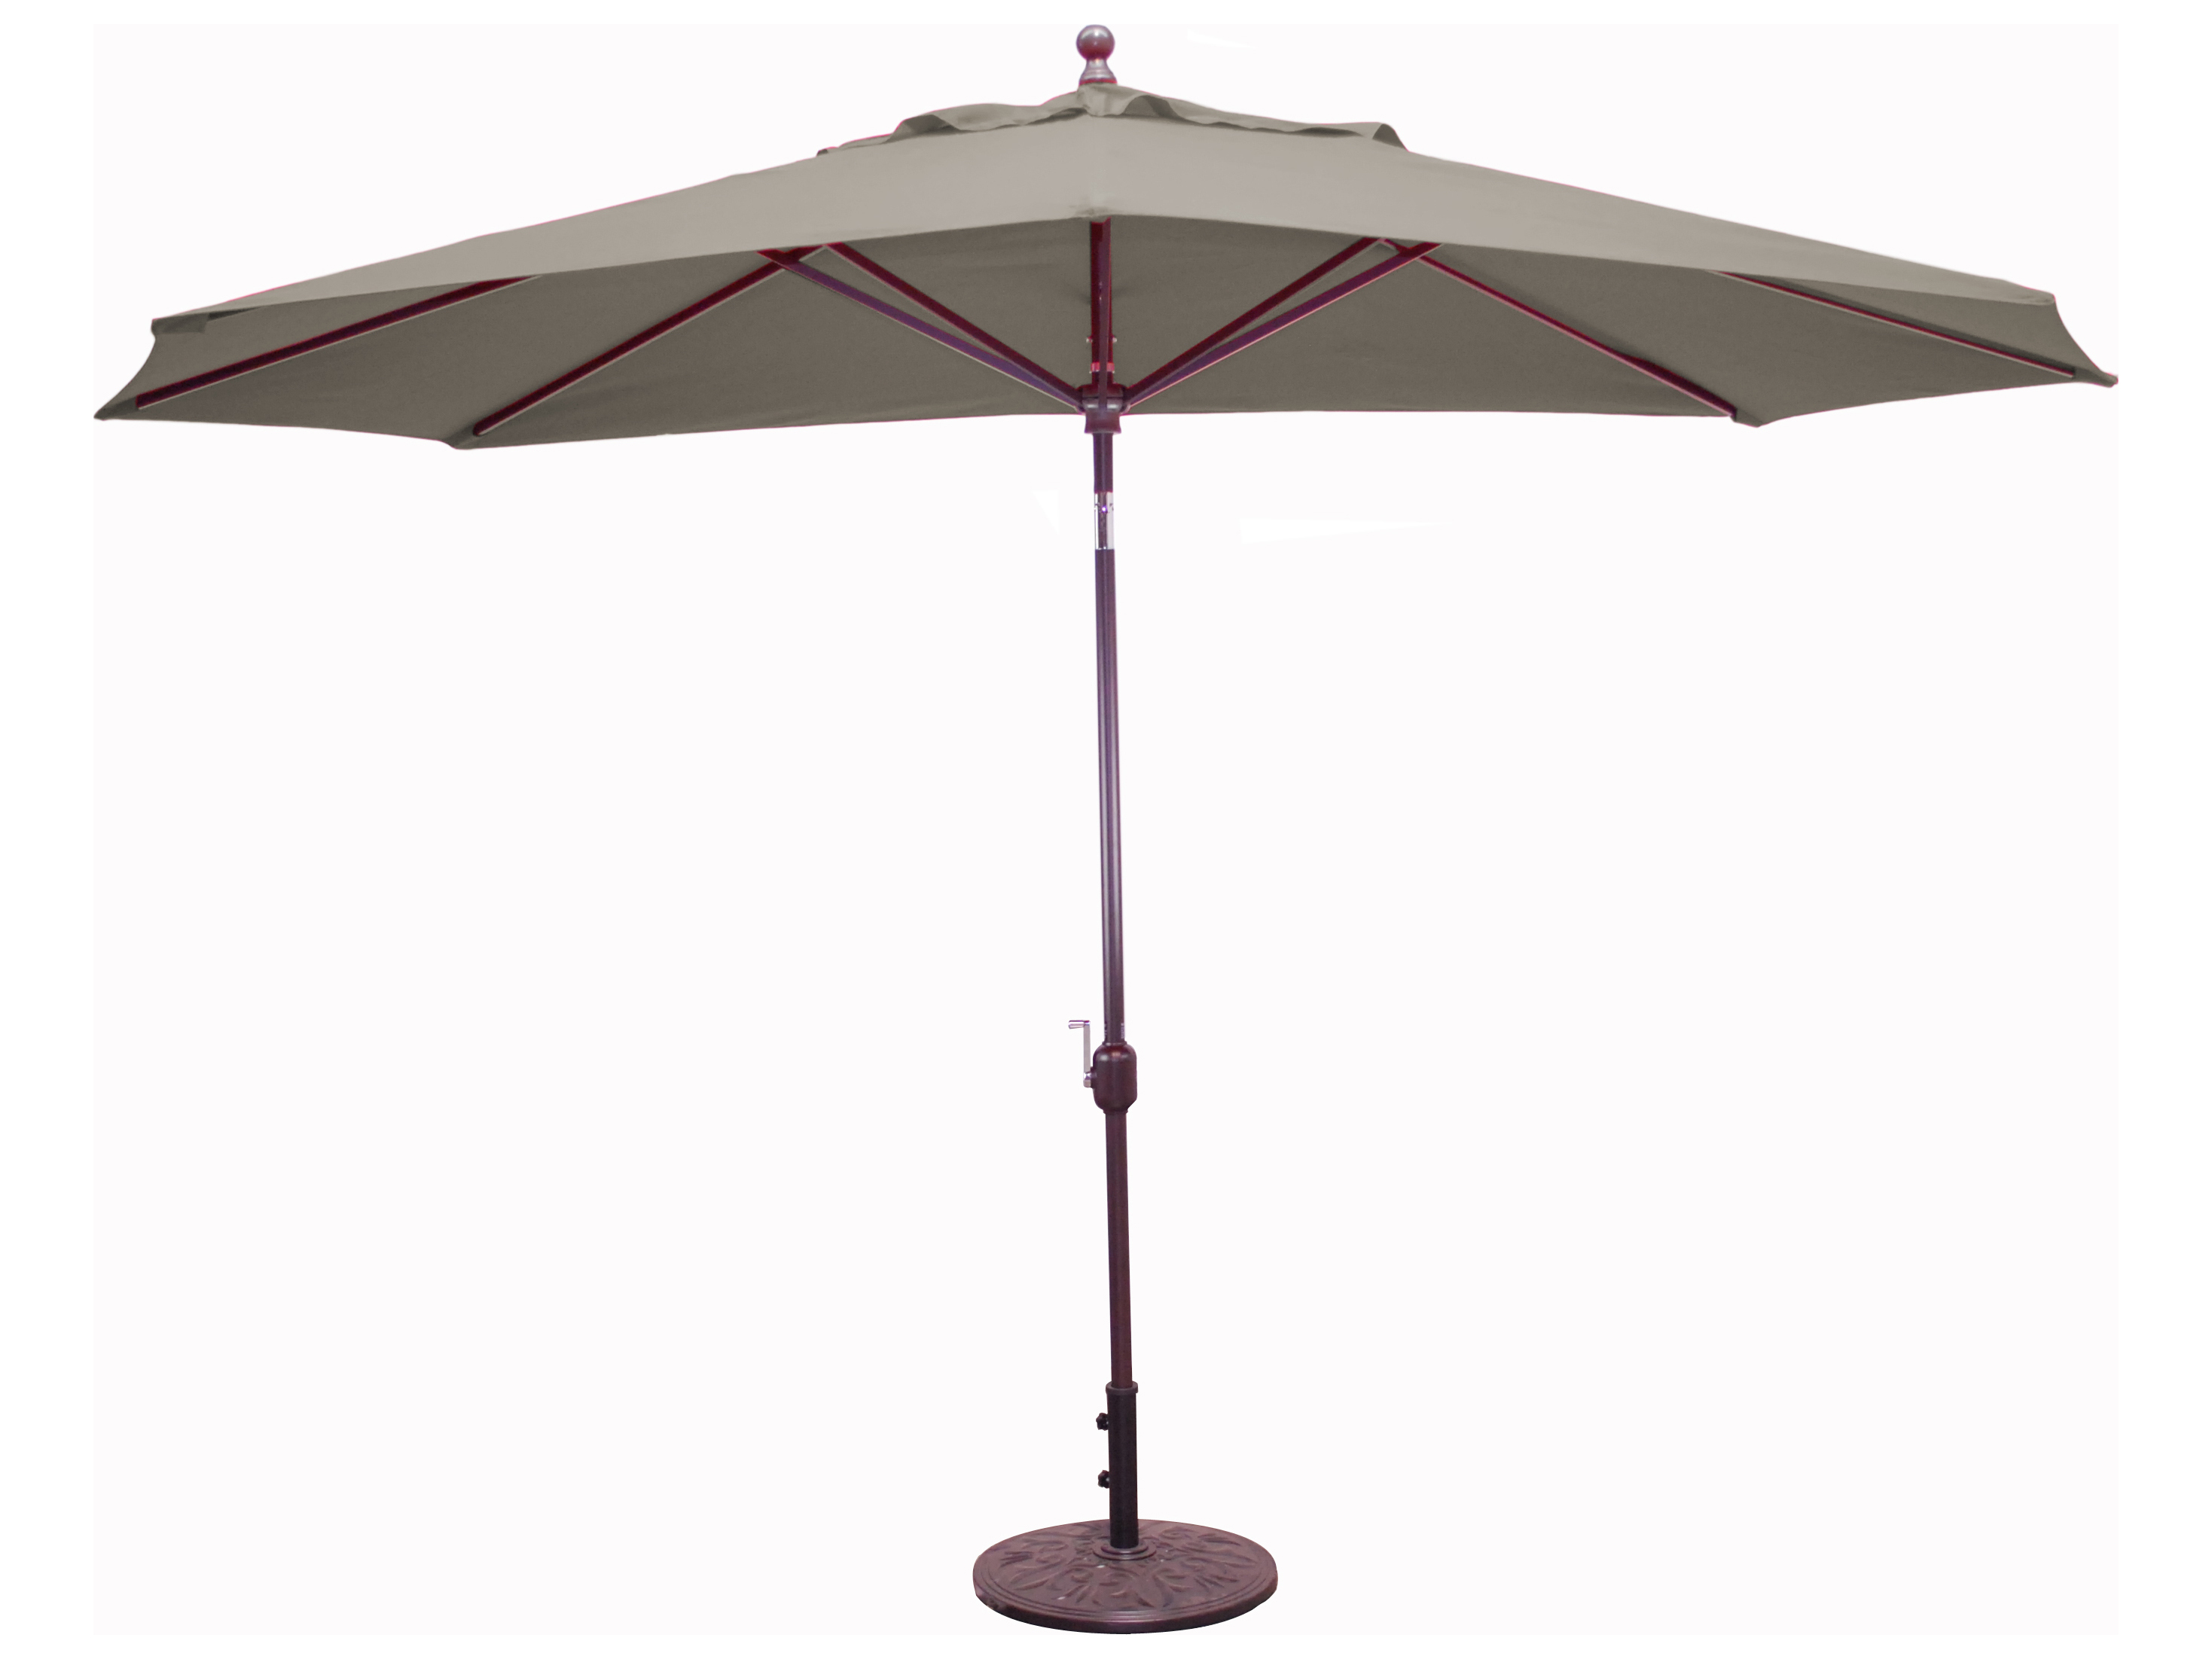 11 Foot Rectangular Patio Umbrella